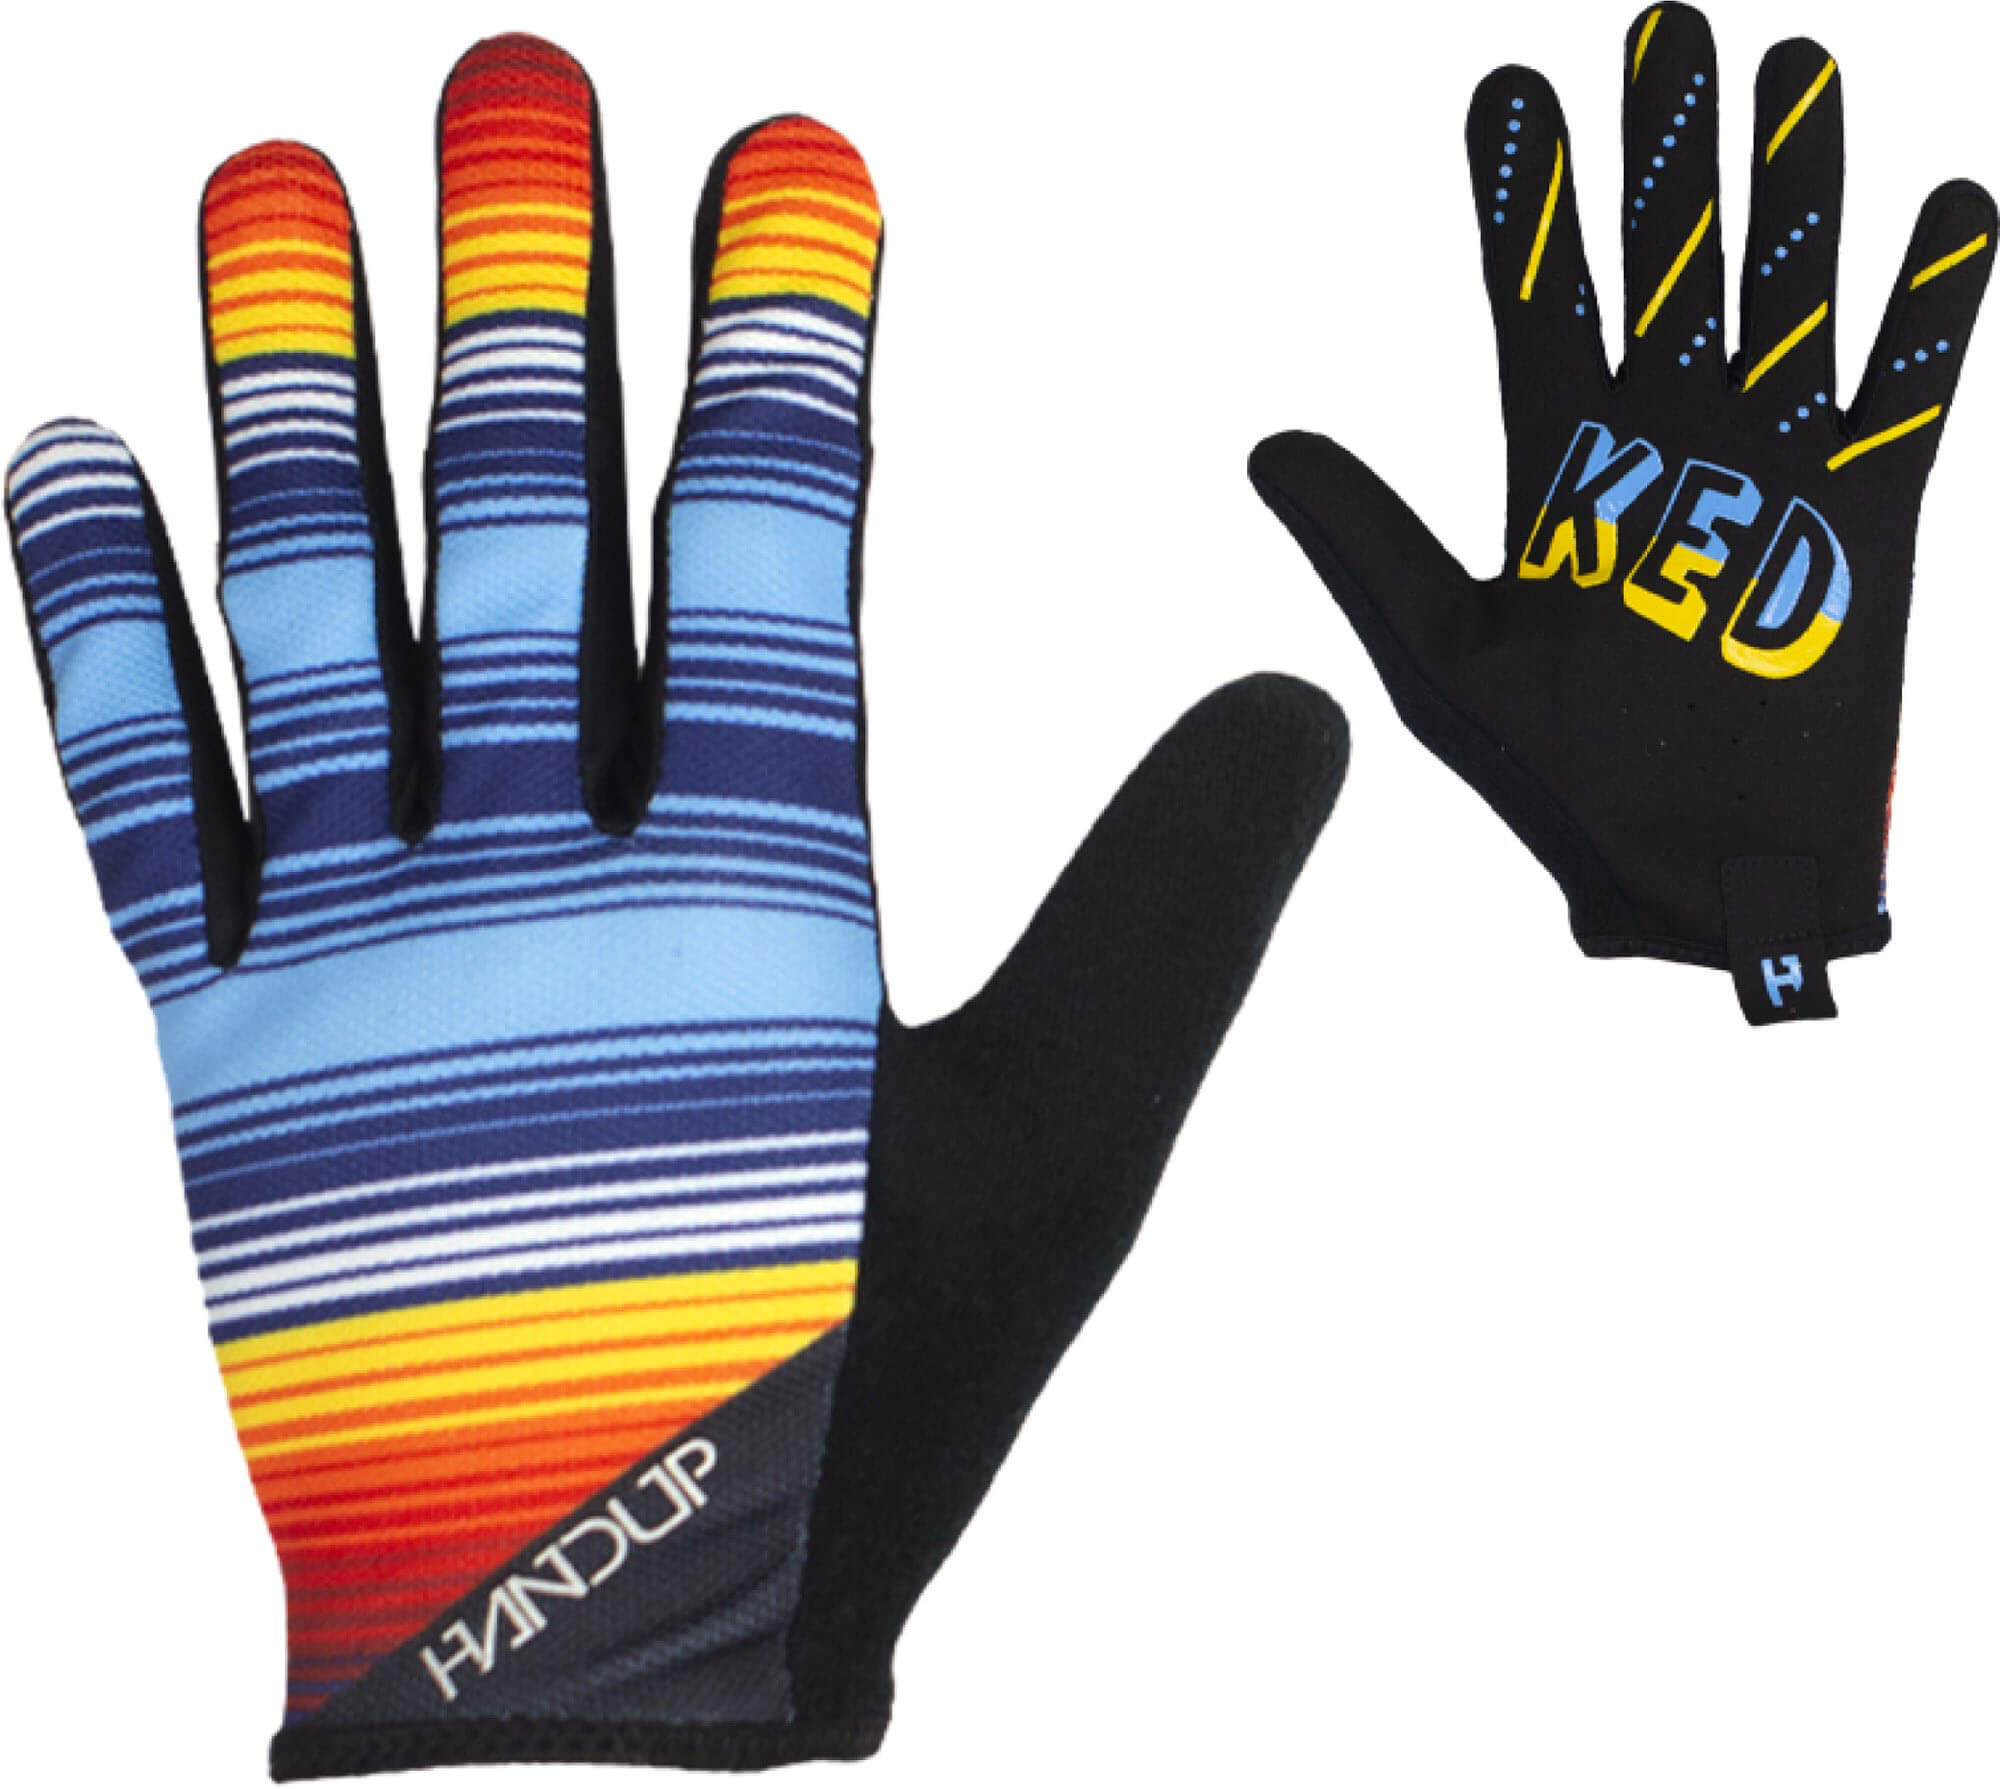 HANDUP Most Days Cycling Gloves